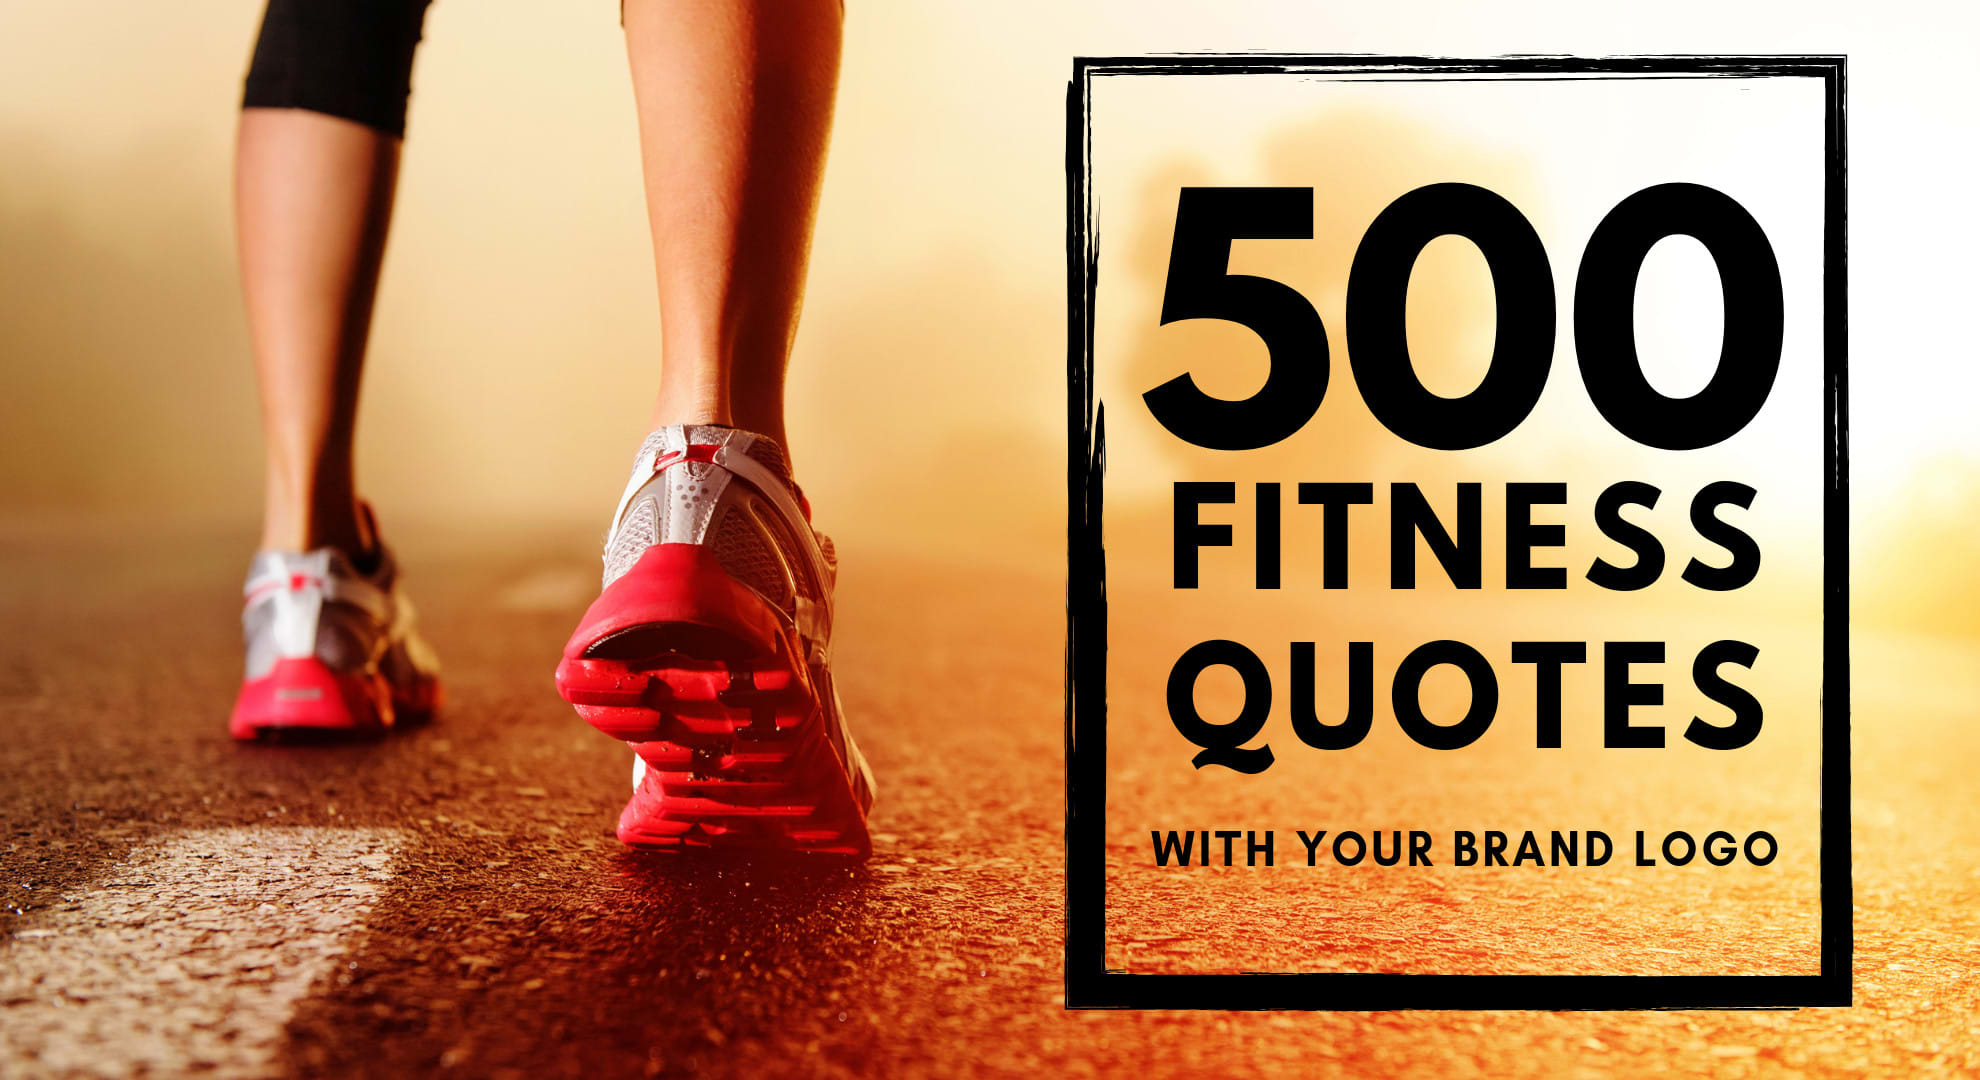 Design 500 Fitness Quotes With Your Logo By Hardshill9224